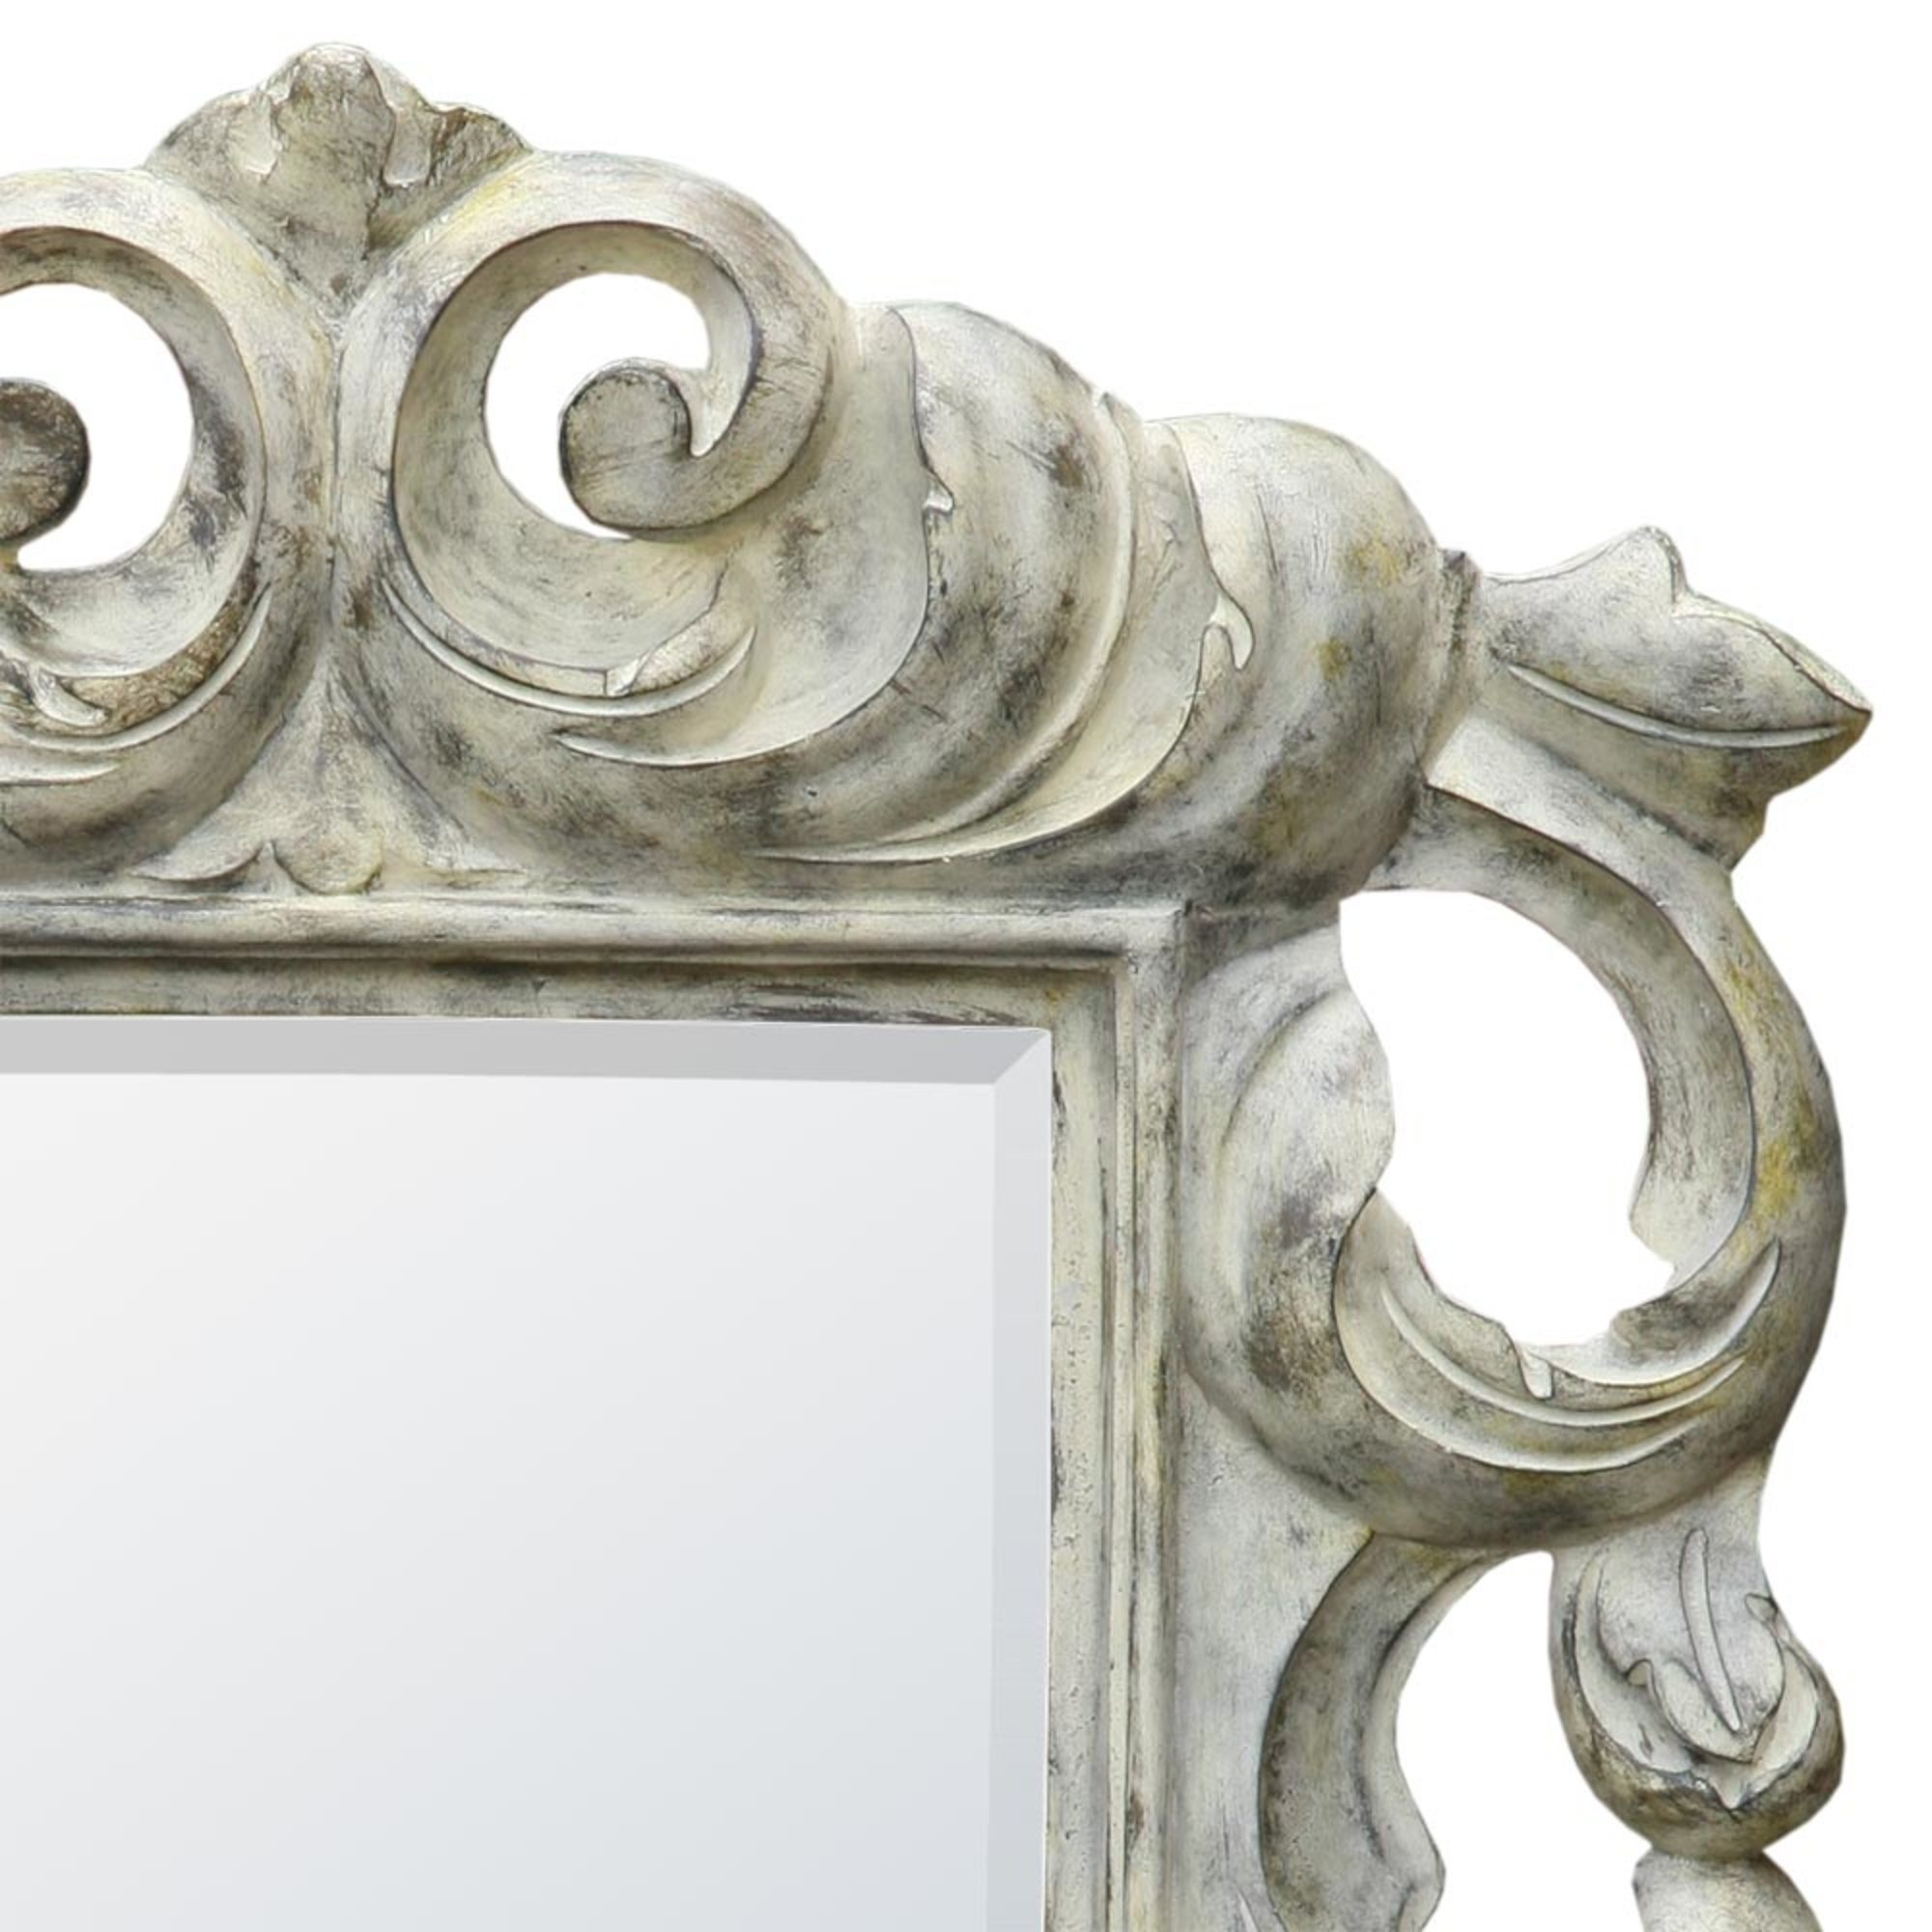 Baroque Rustic Grey Bevelled Portrait Decorative Wall Bedroom Hall Mirror